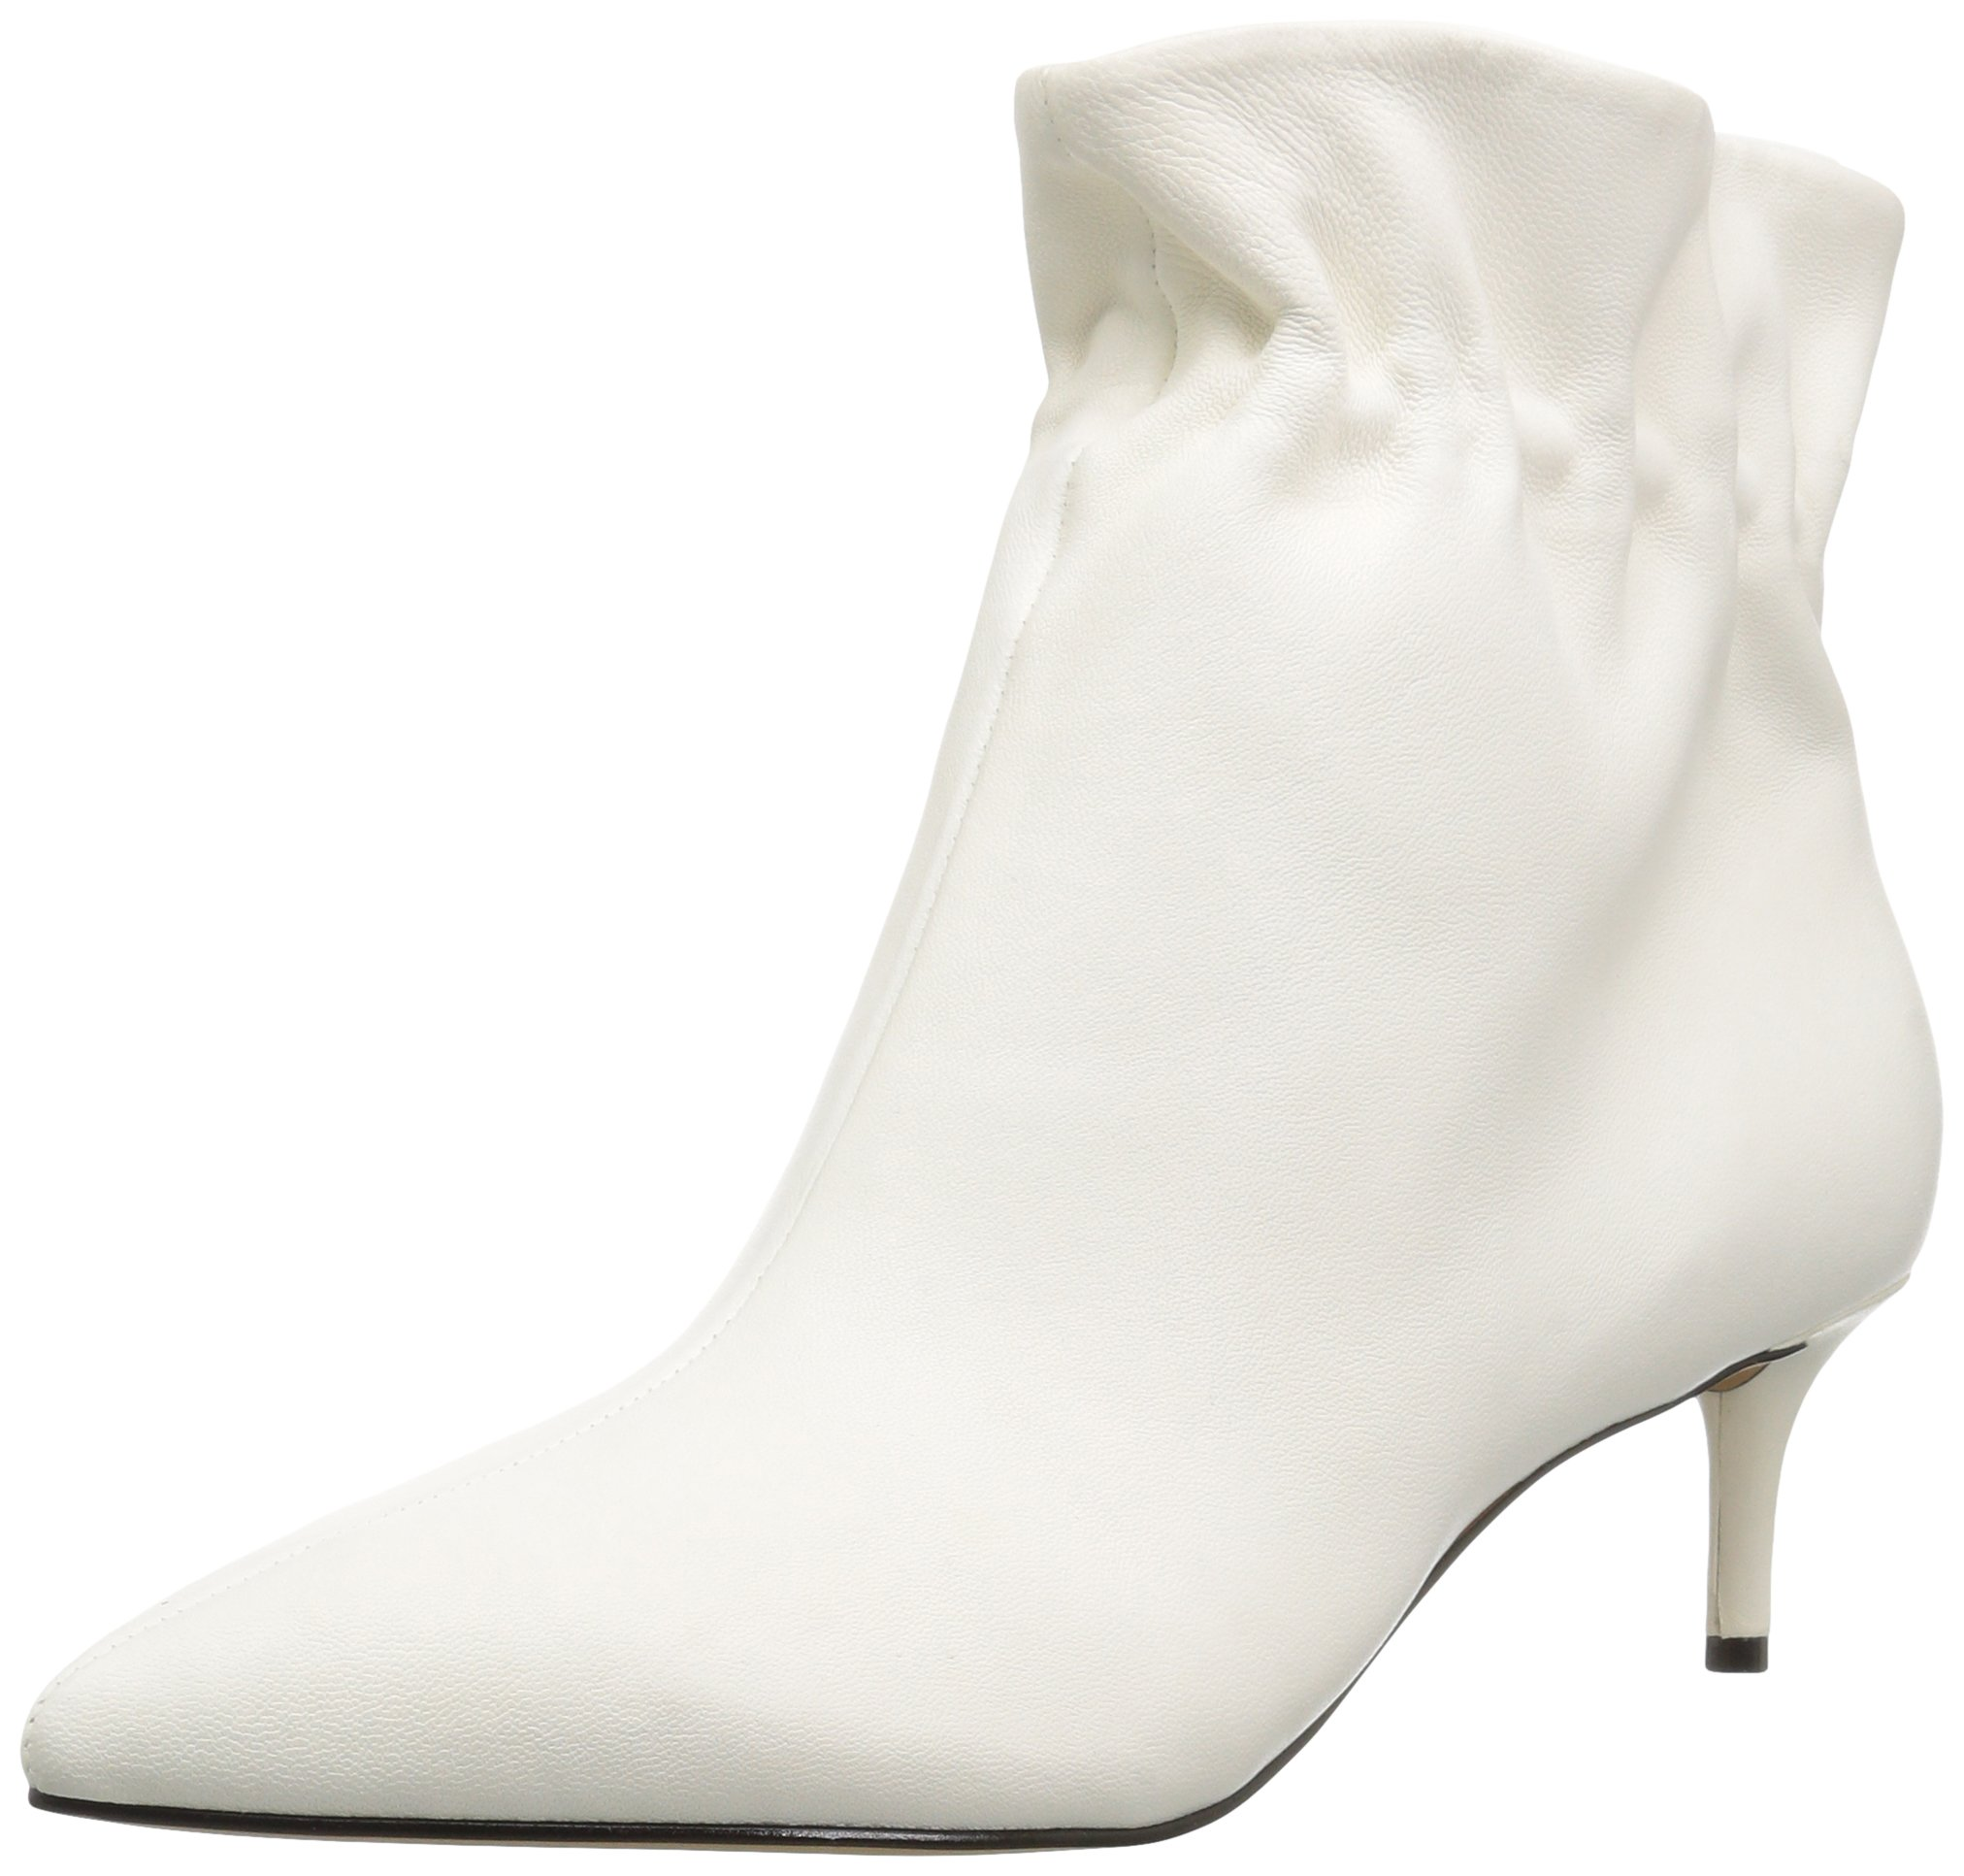 Dolce Vita Women's Rain Ankle Boot, Off White Leather, 10 M US